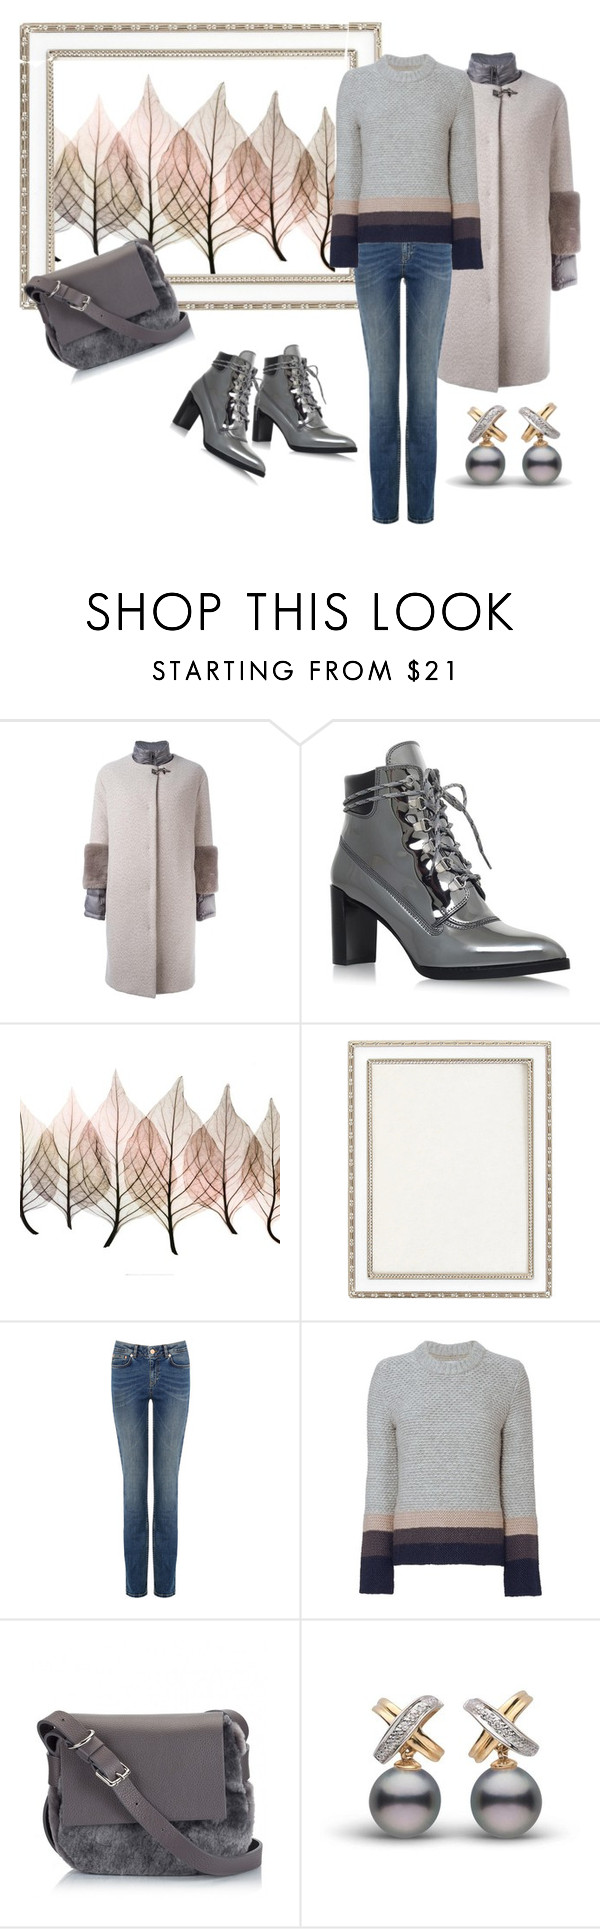 """Lovely grey!!"" by bv-b ❤ liked on Polyvore featuring FAY, Stuart Weitzman, Artistica, Haffke and Brochu Walker"